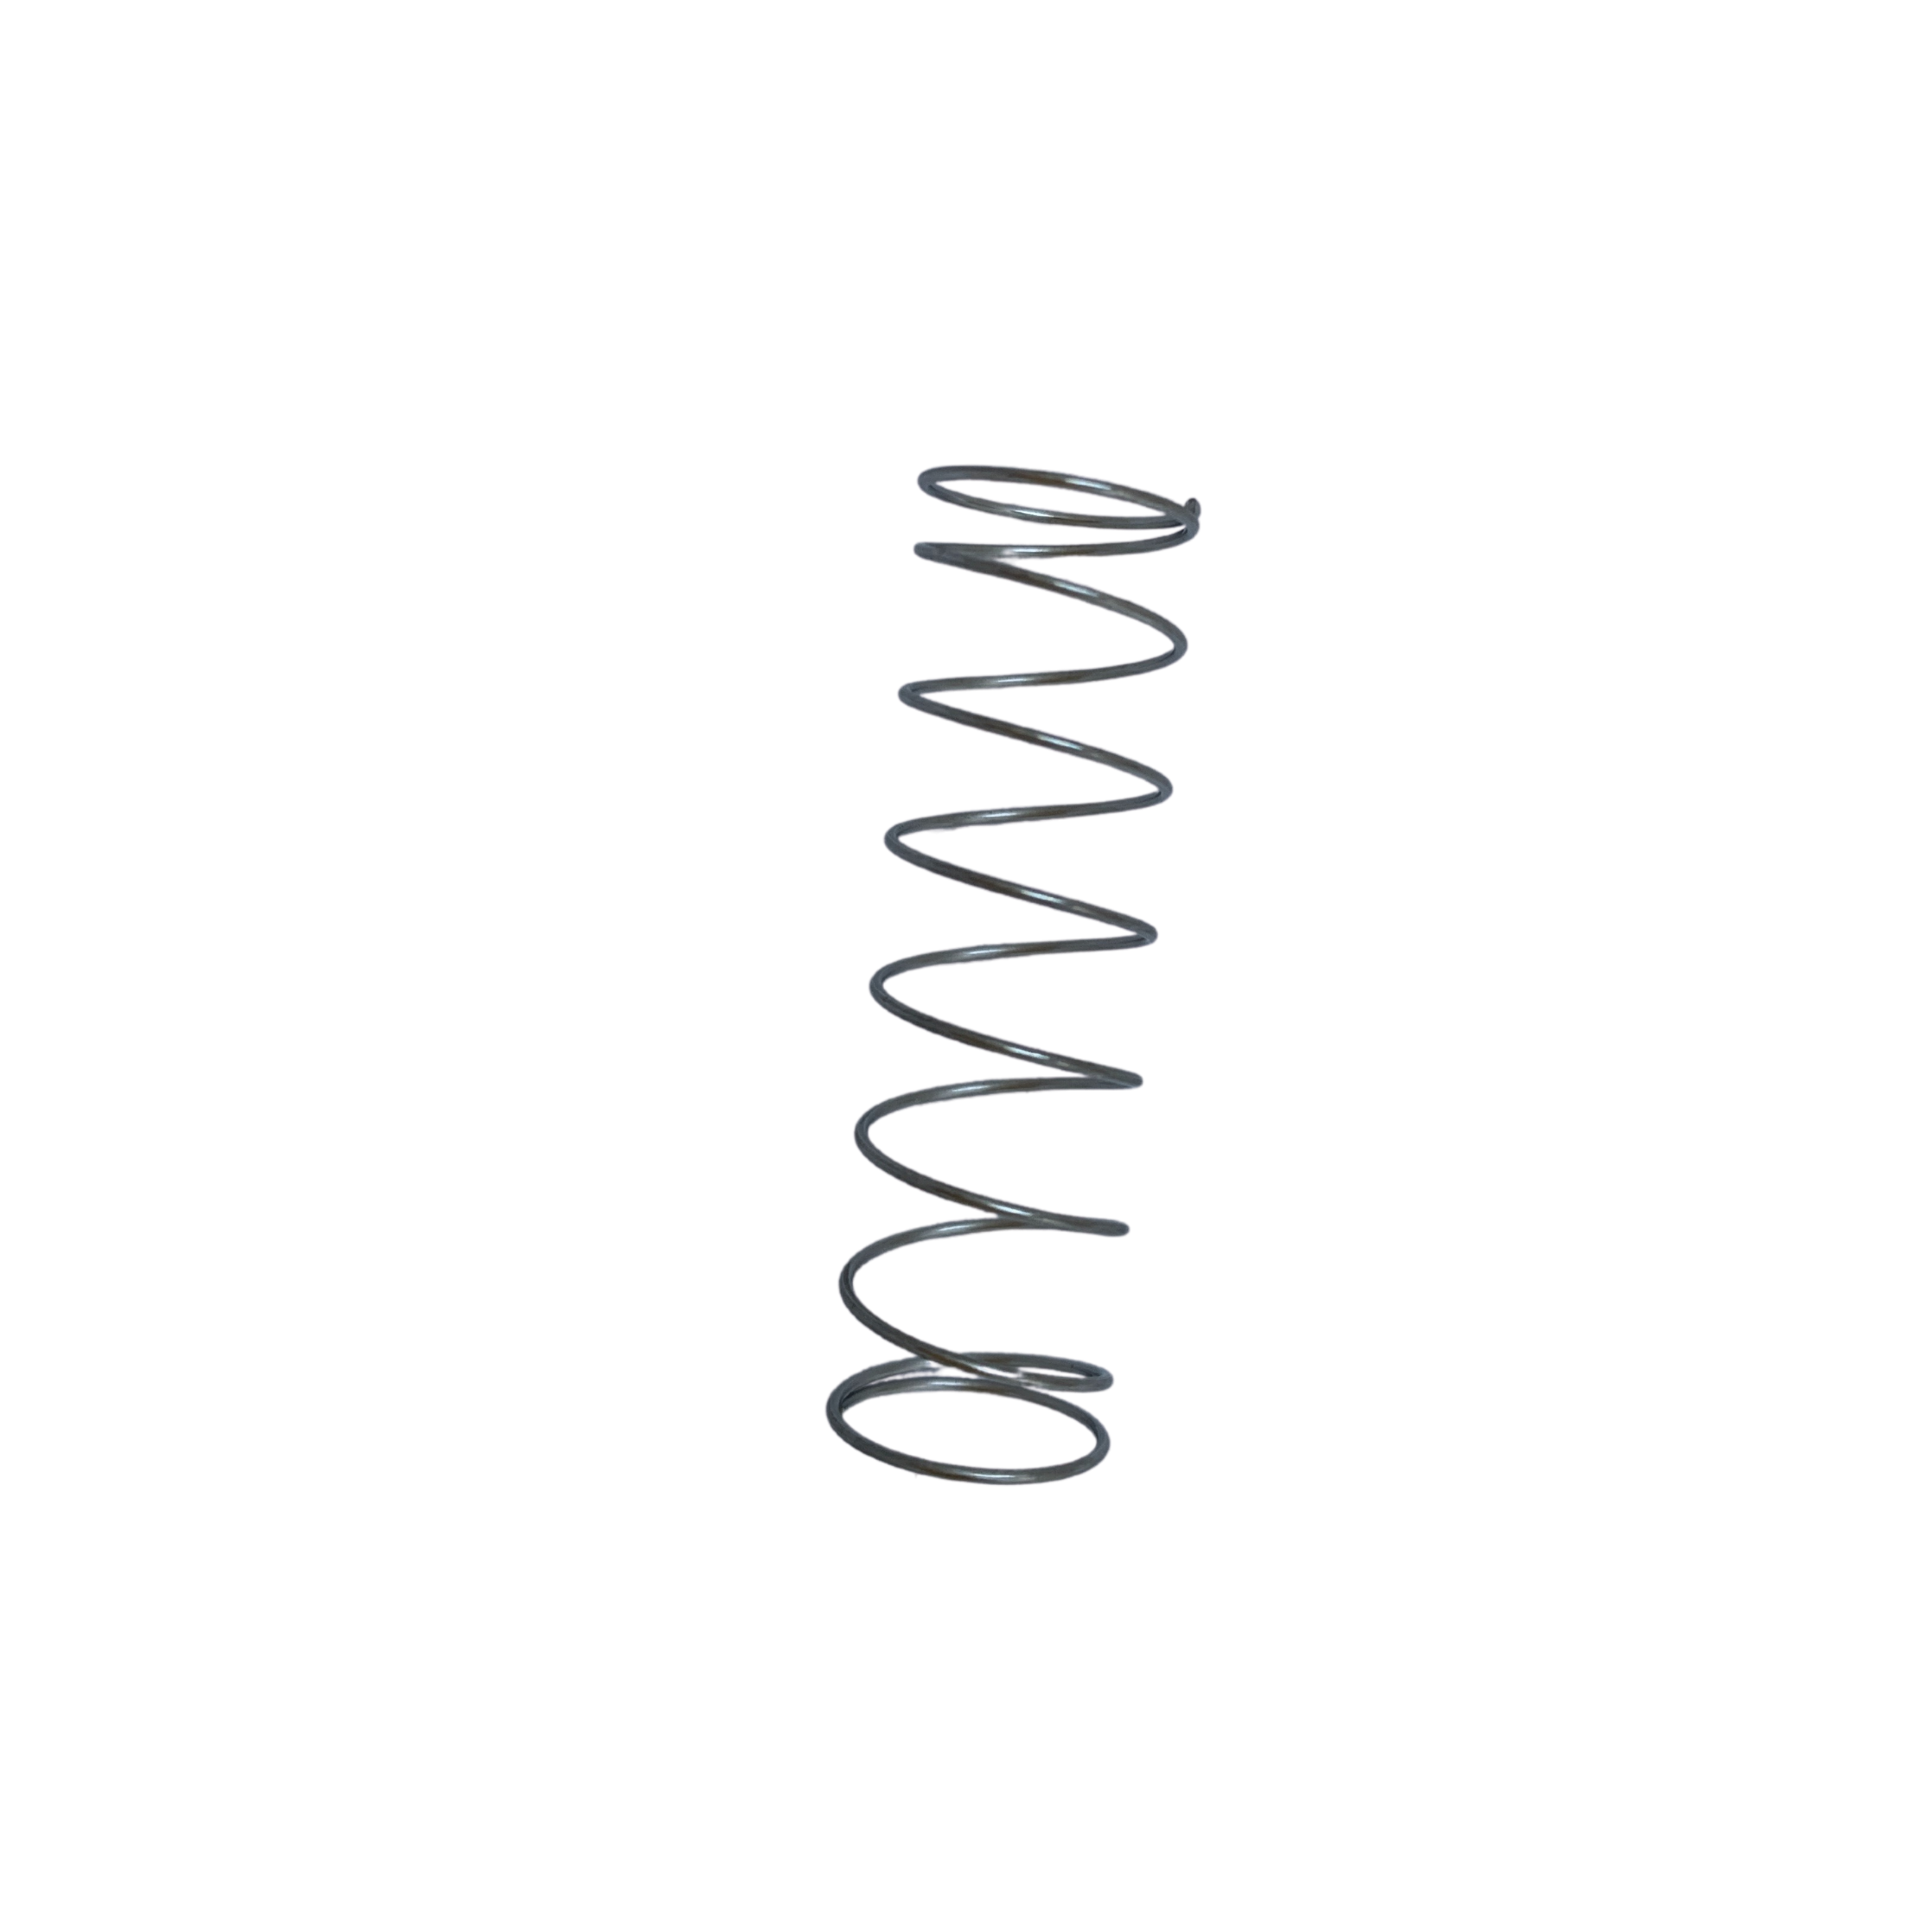 242401 Slimline Button Spring for Walvit Toilets